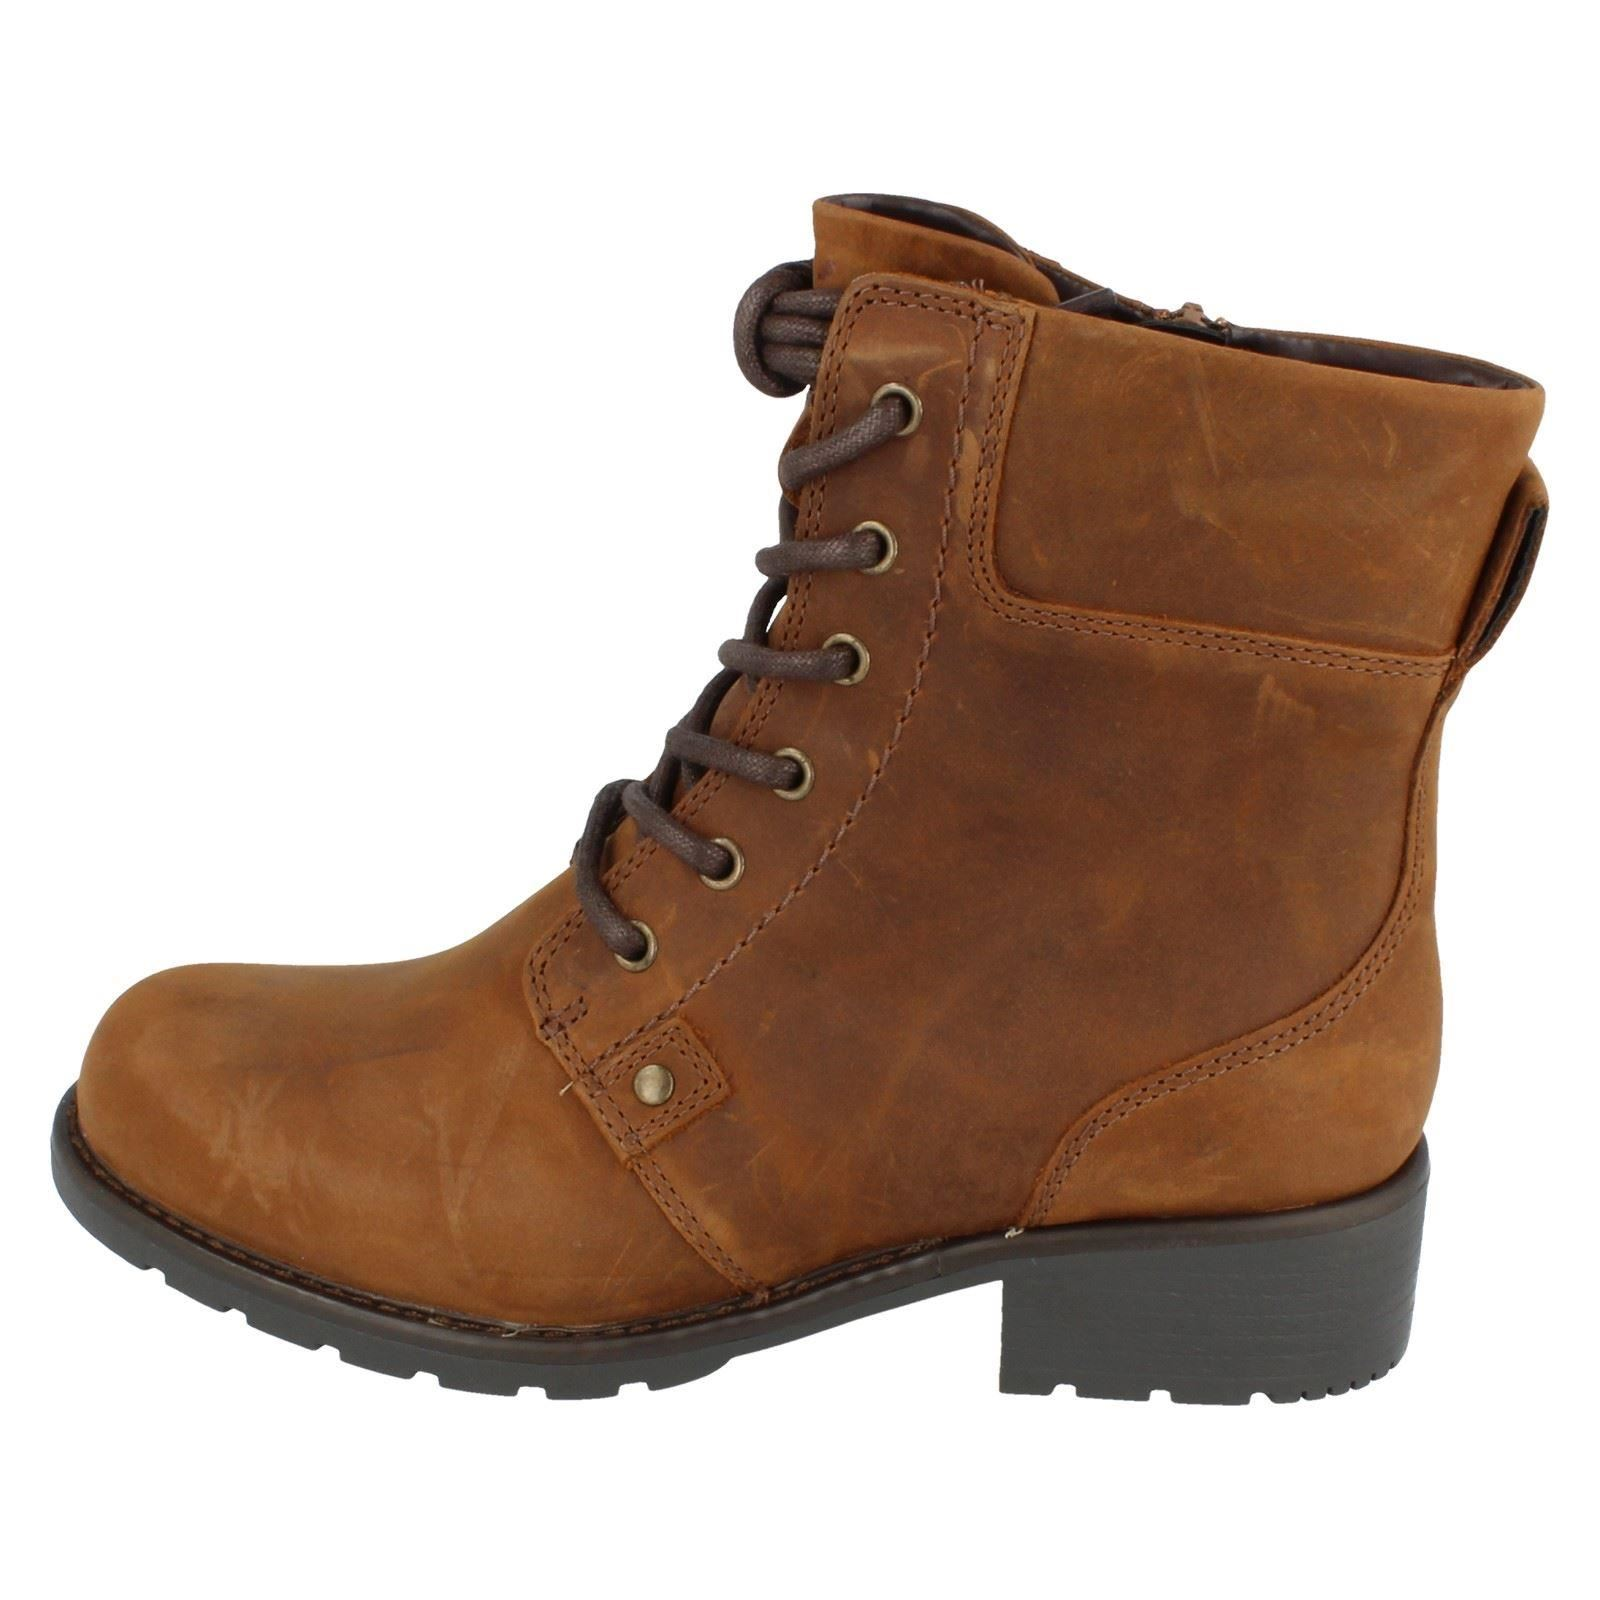 Ladies-Clarks-Casual-Lace-Up-Inside-Zip-Nubuck-Leather-Ankle-Boots-Orinoco-Spice thumbnail 12